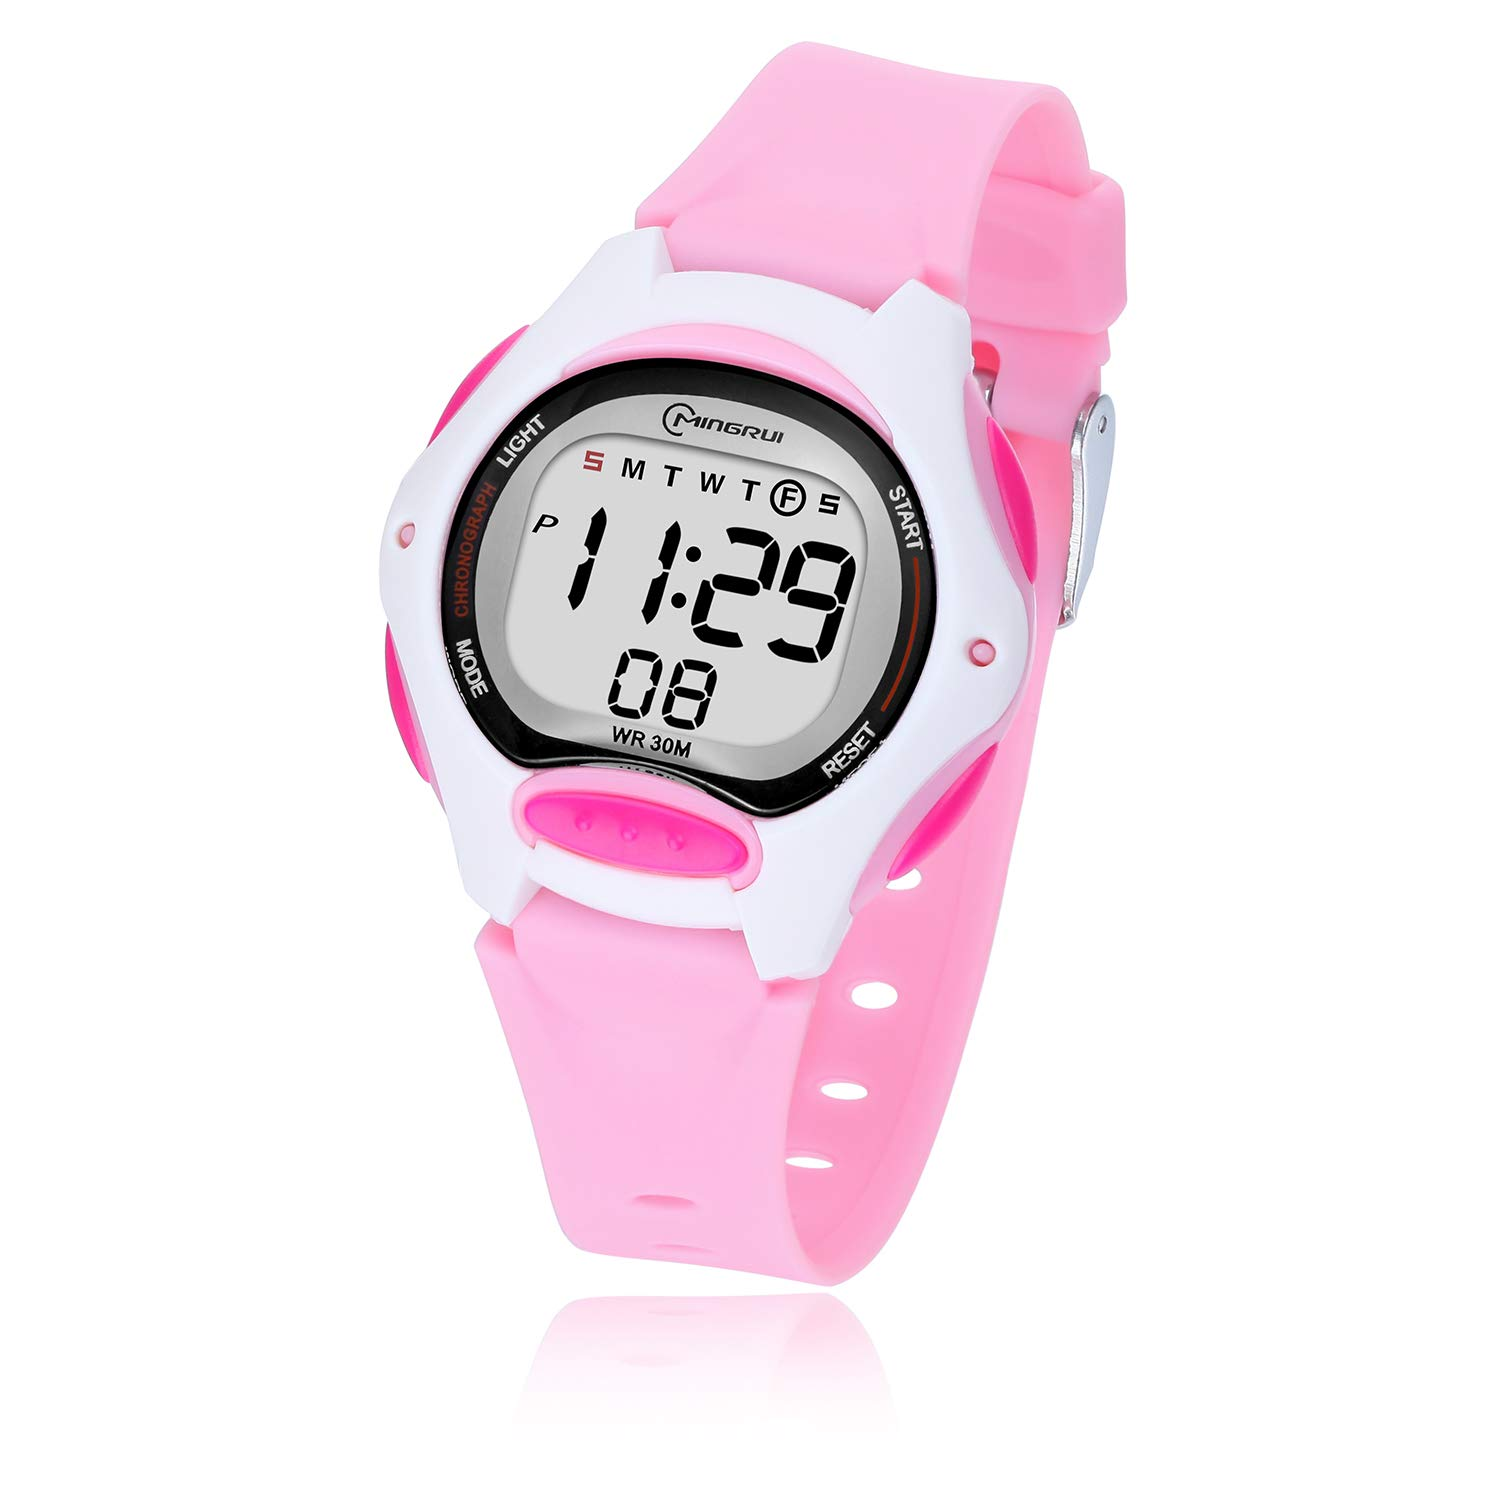 Kids Digital Watch,Girls Boys Waterproof Multi-Functional Cute WristWatches for Children Ages 3-12 (Pink) by Yadelai